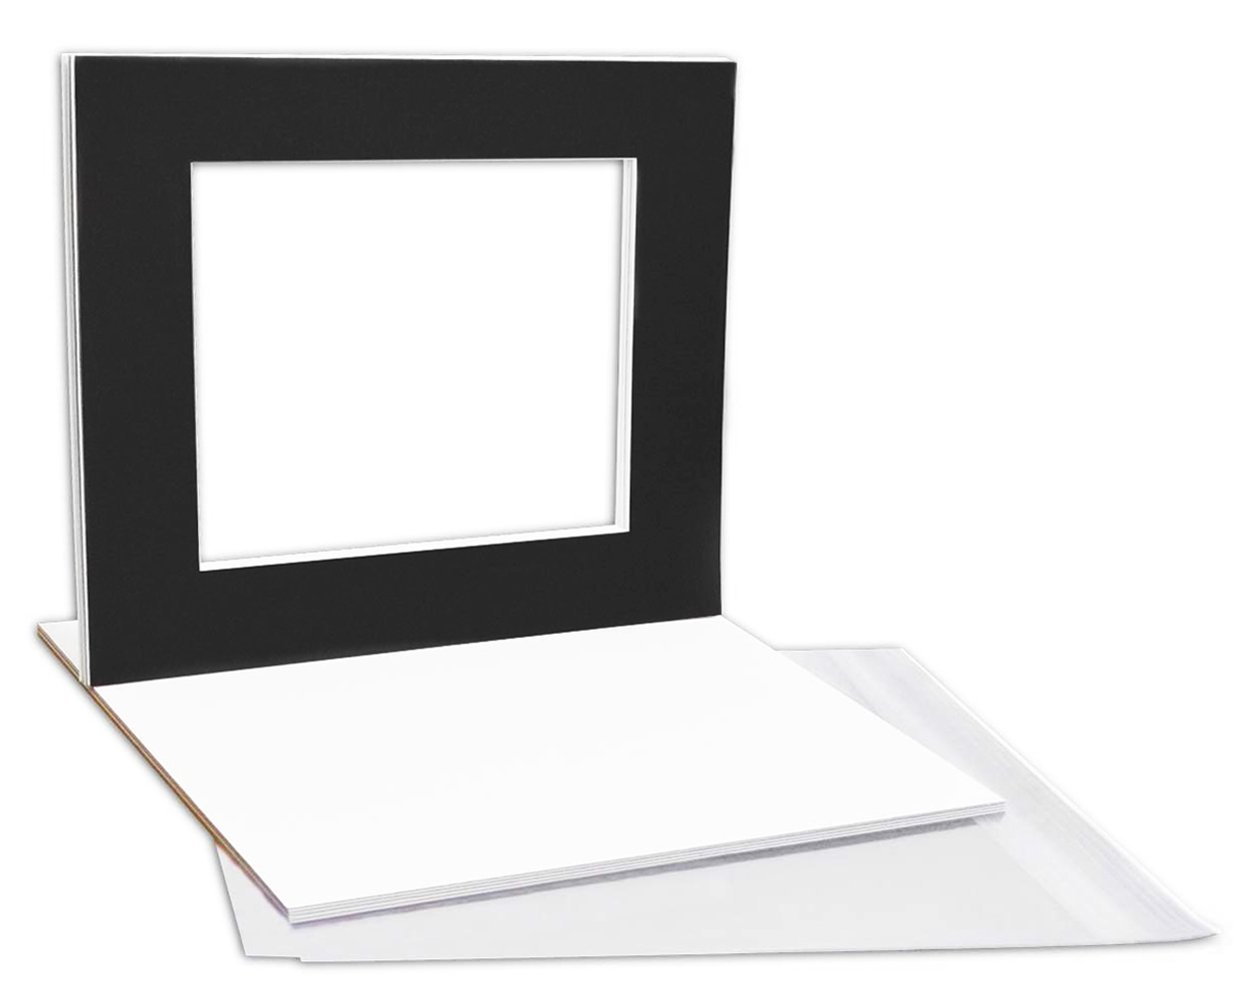 Pack of 10 16x20 Black Picture Mats Mattes with White Core Bevel Cut for 11x14 Photo + Backing + Bags by Golden State Art